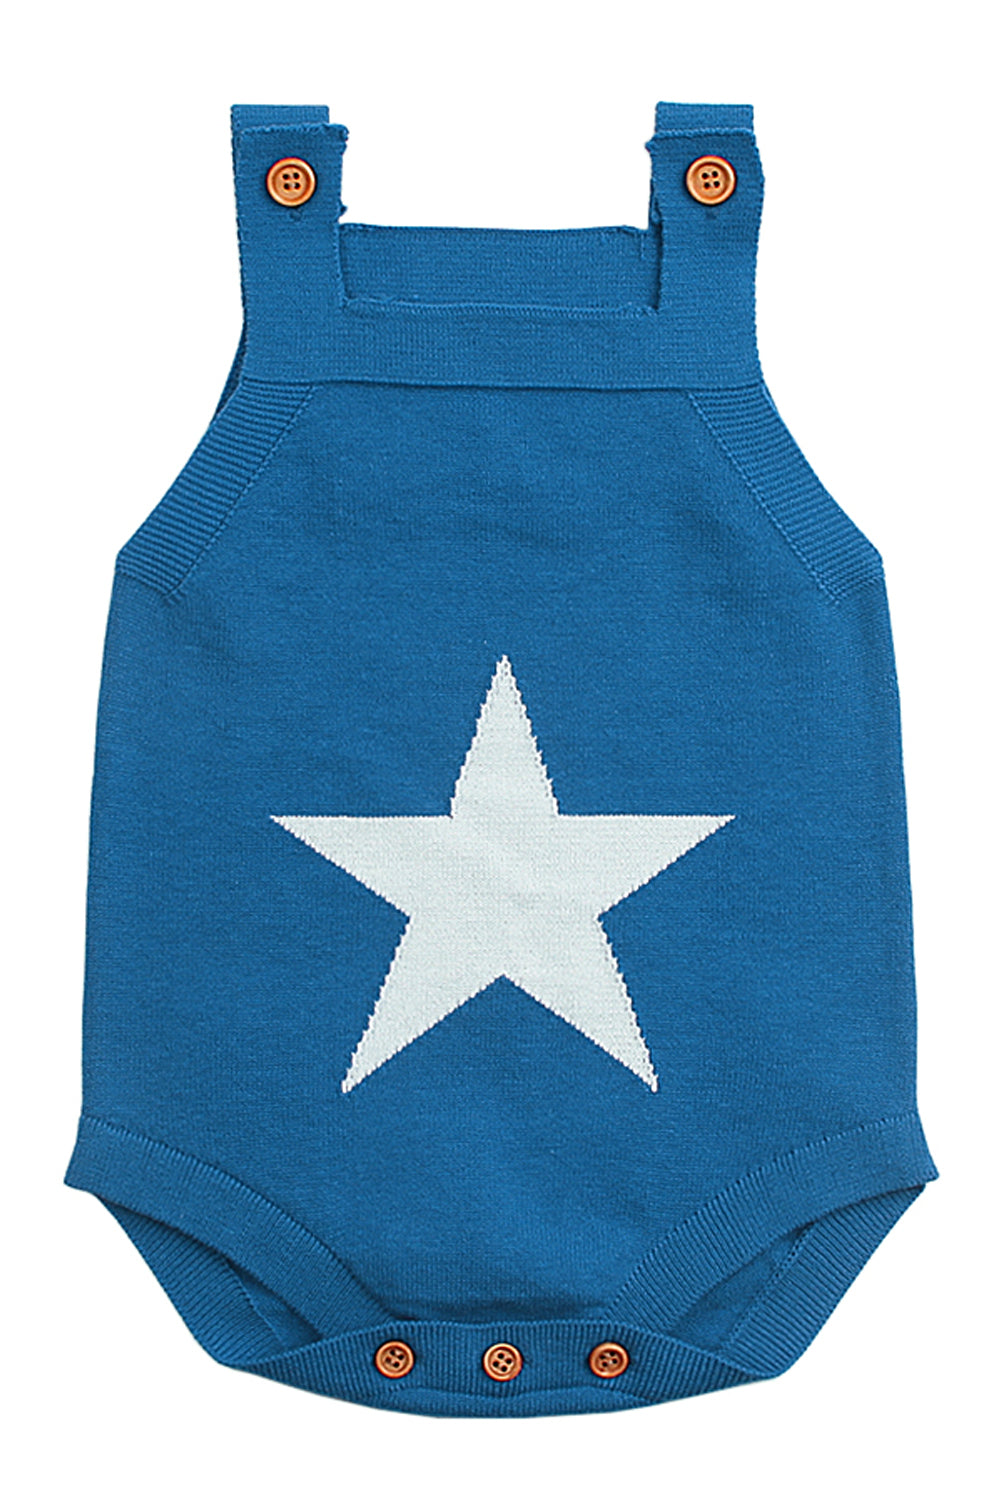 Blue Star Pattern Knitted Infant Romper Baby Wear